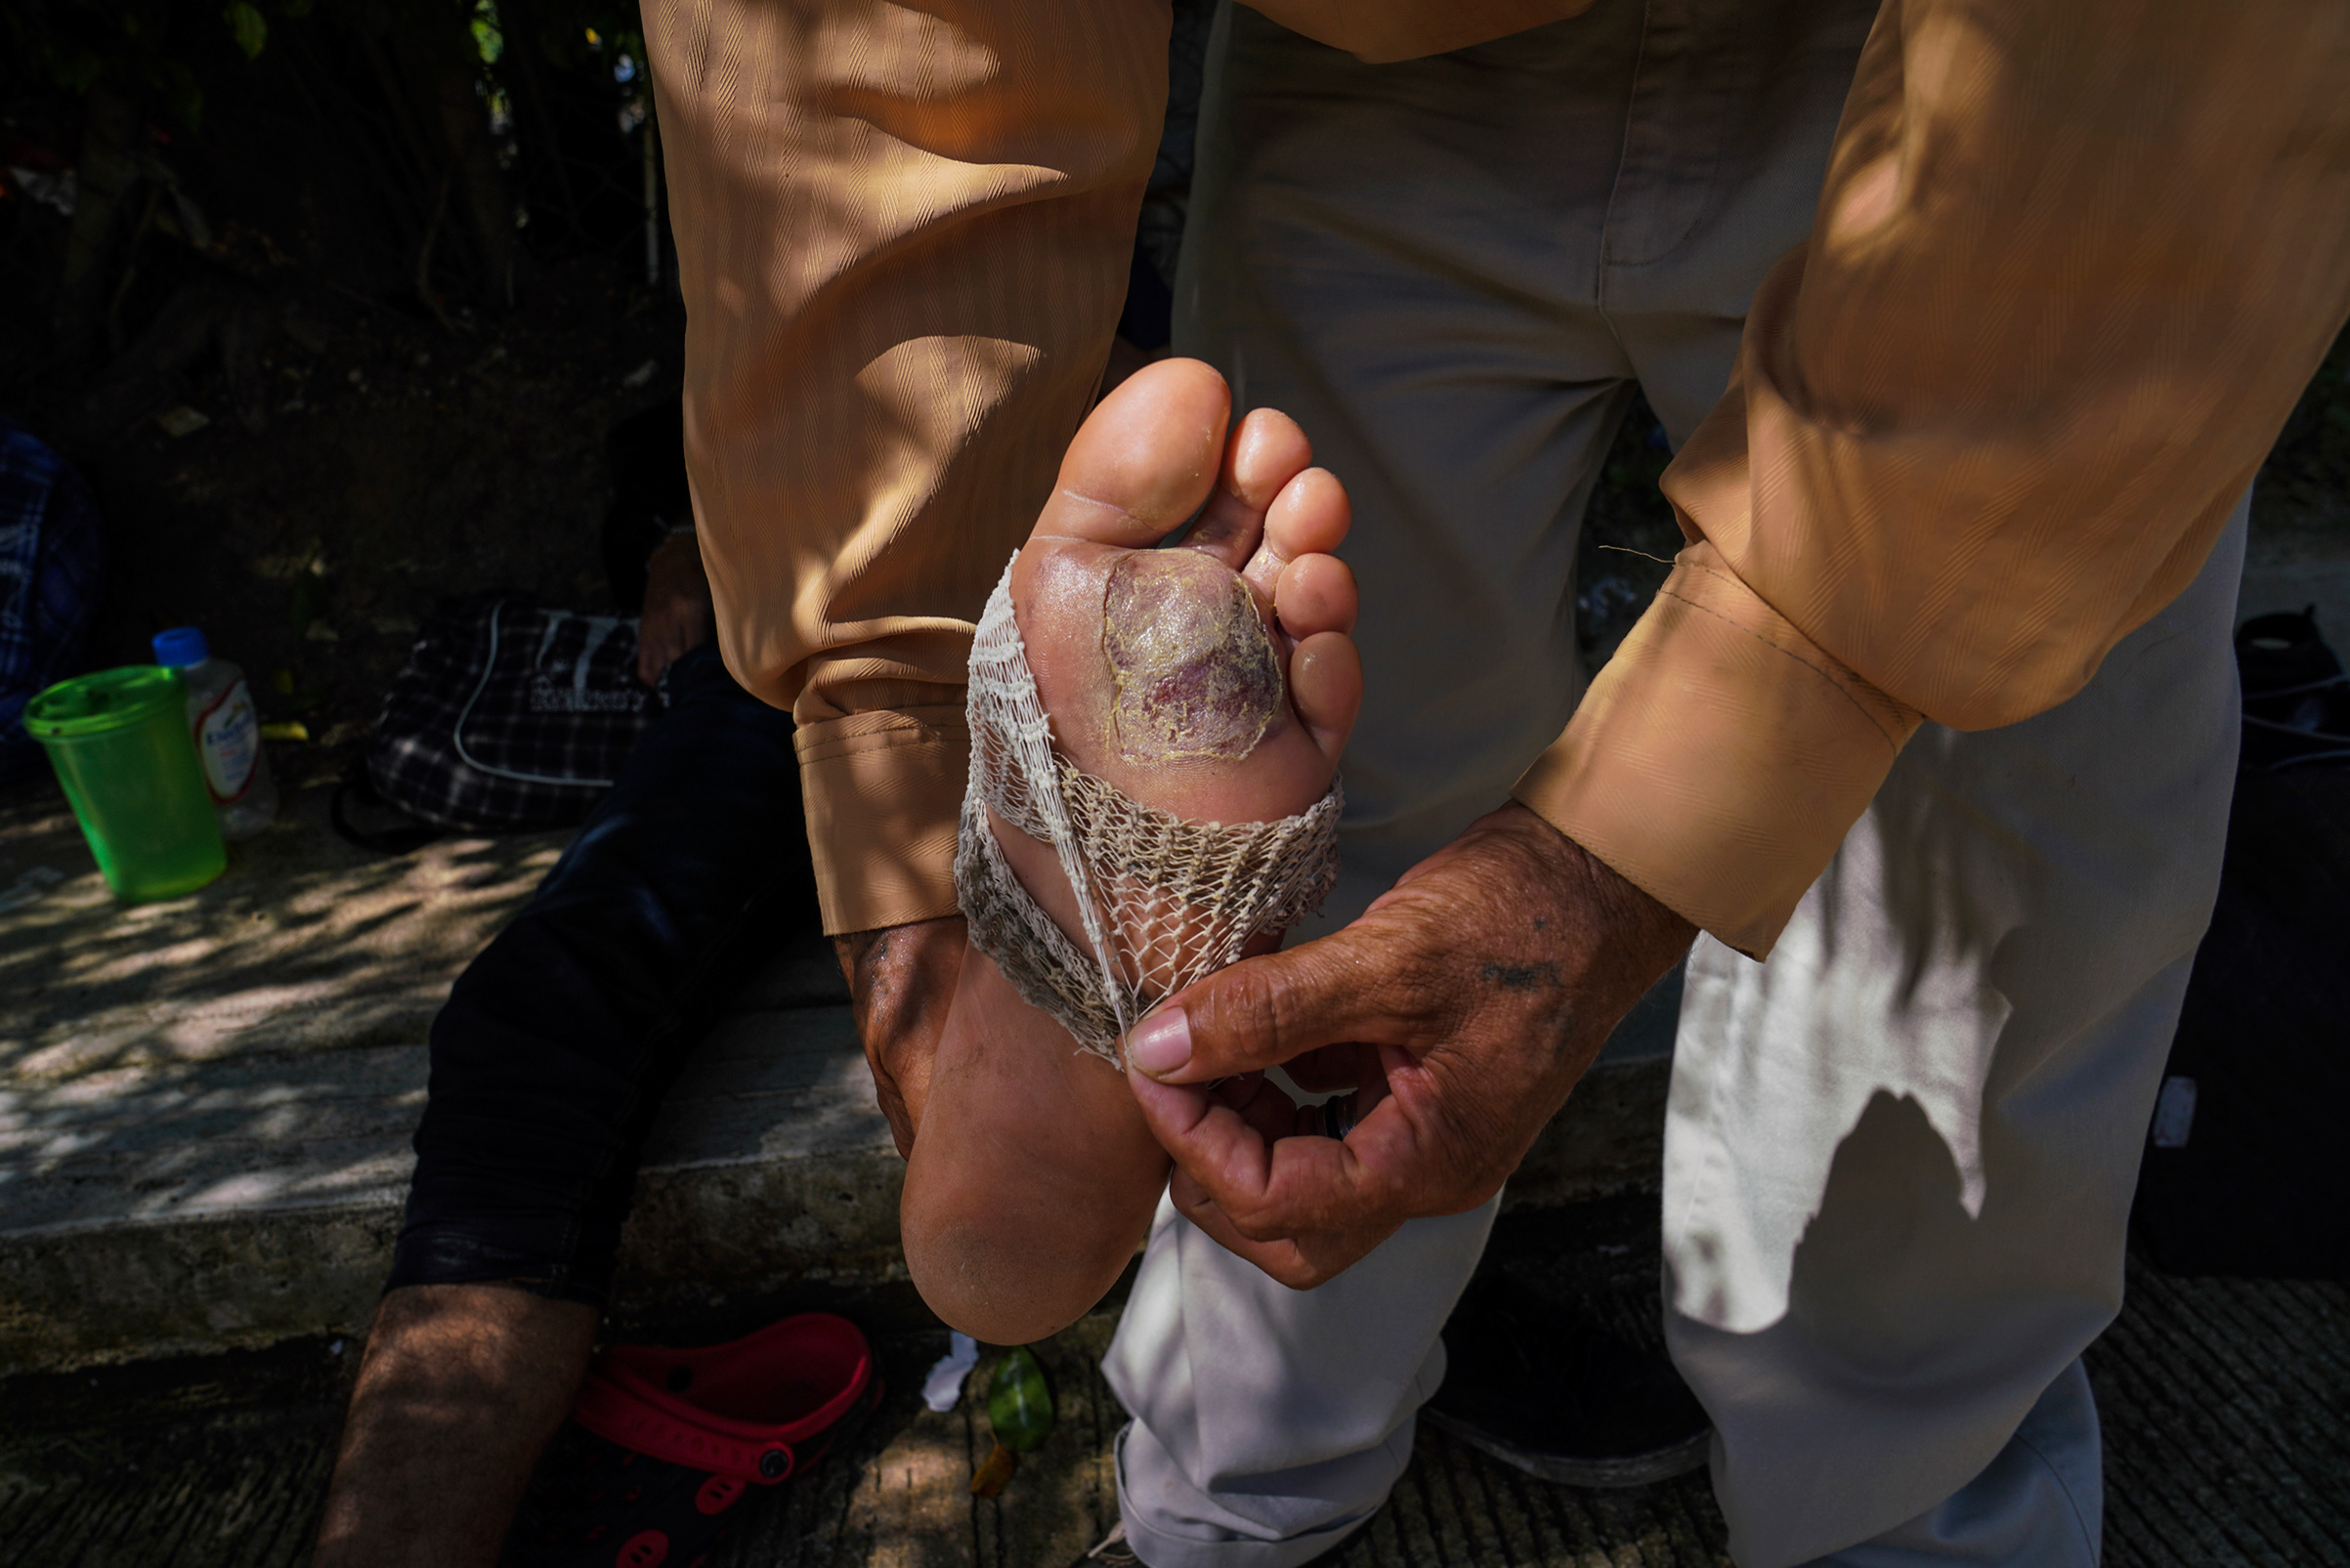 A Salvadoran migrant, and former member of MS-13, shows the blistered foot of another migrant minutes after he applied cream to it near Palenque, Chiapas, on Oct. 20.